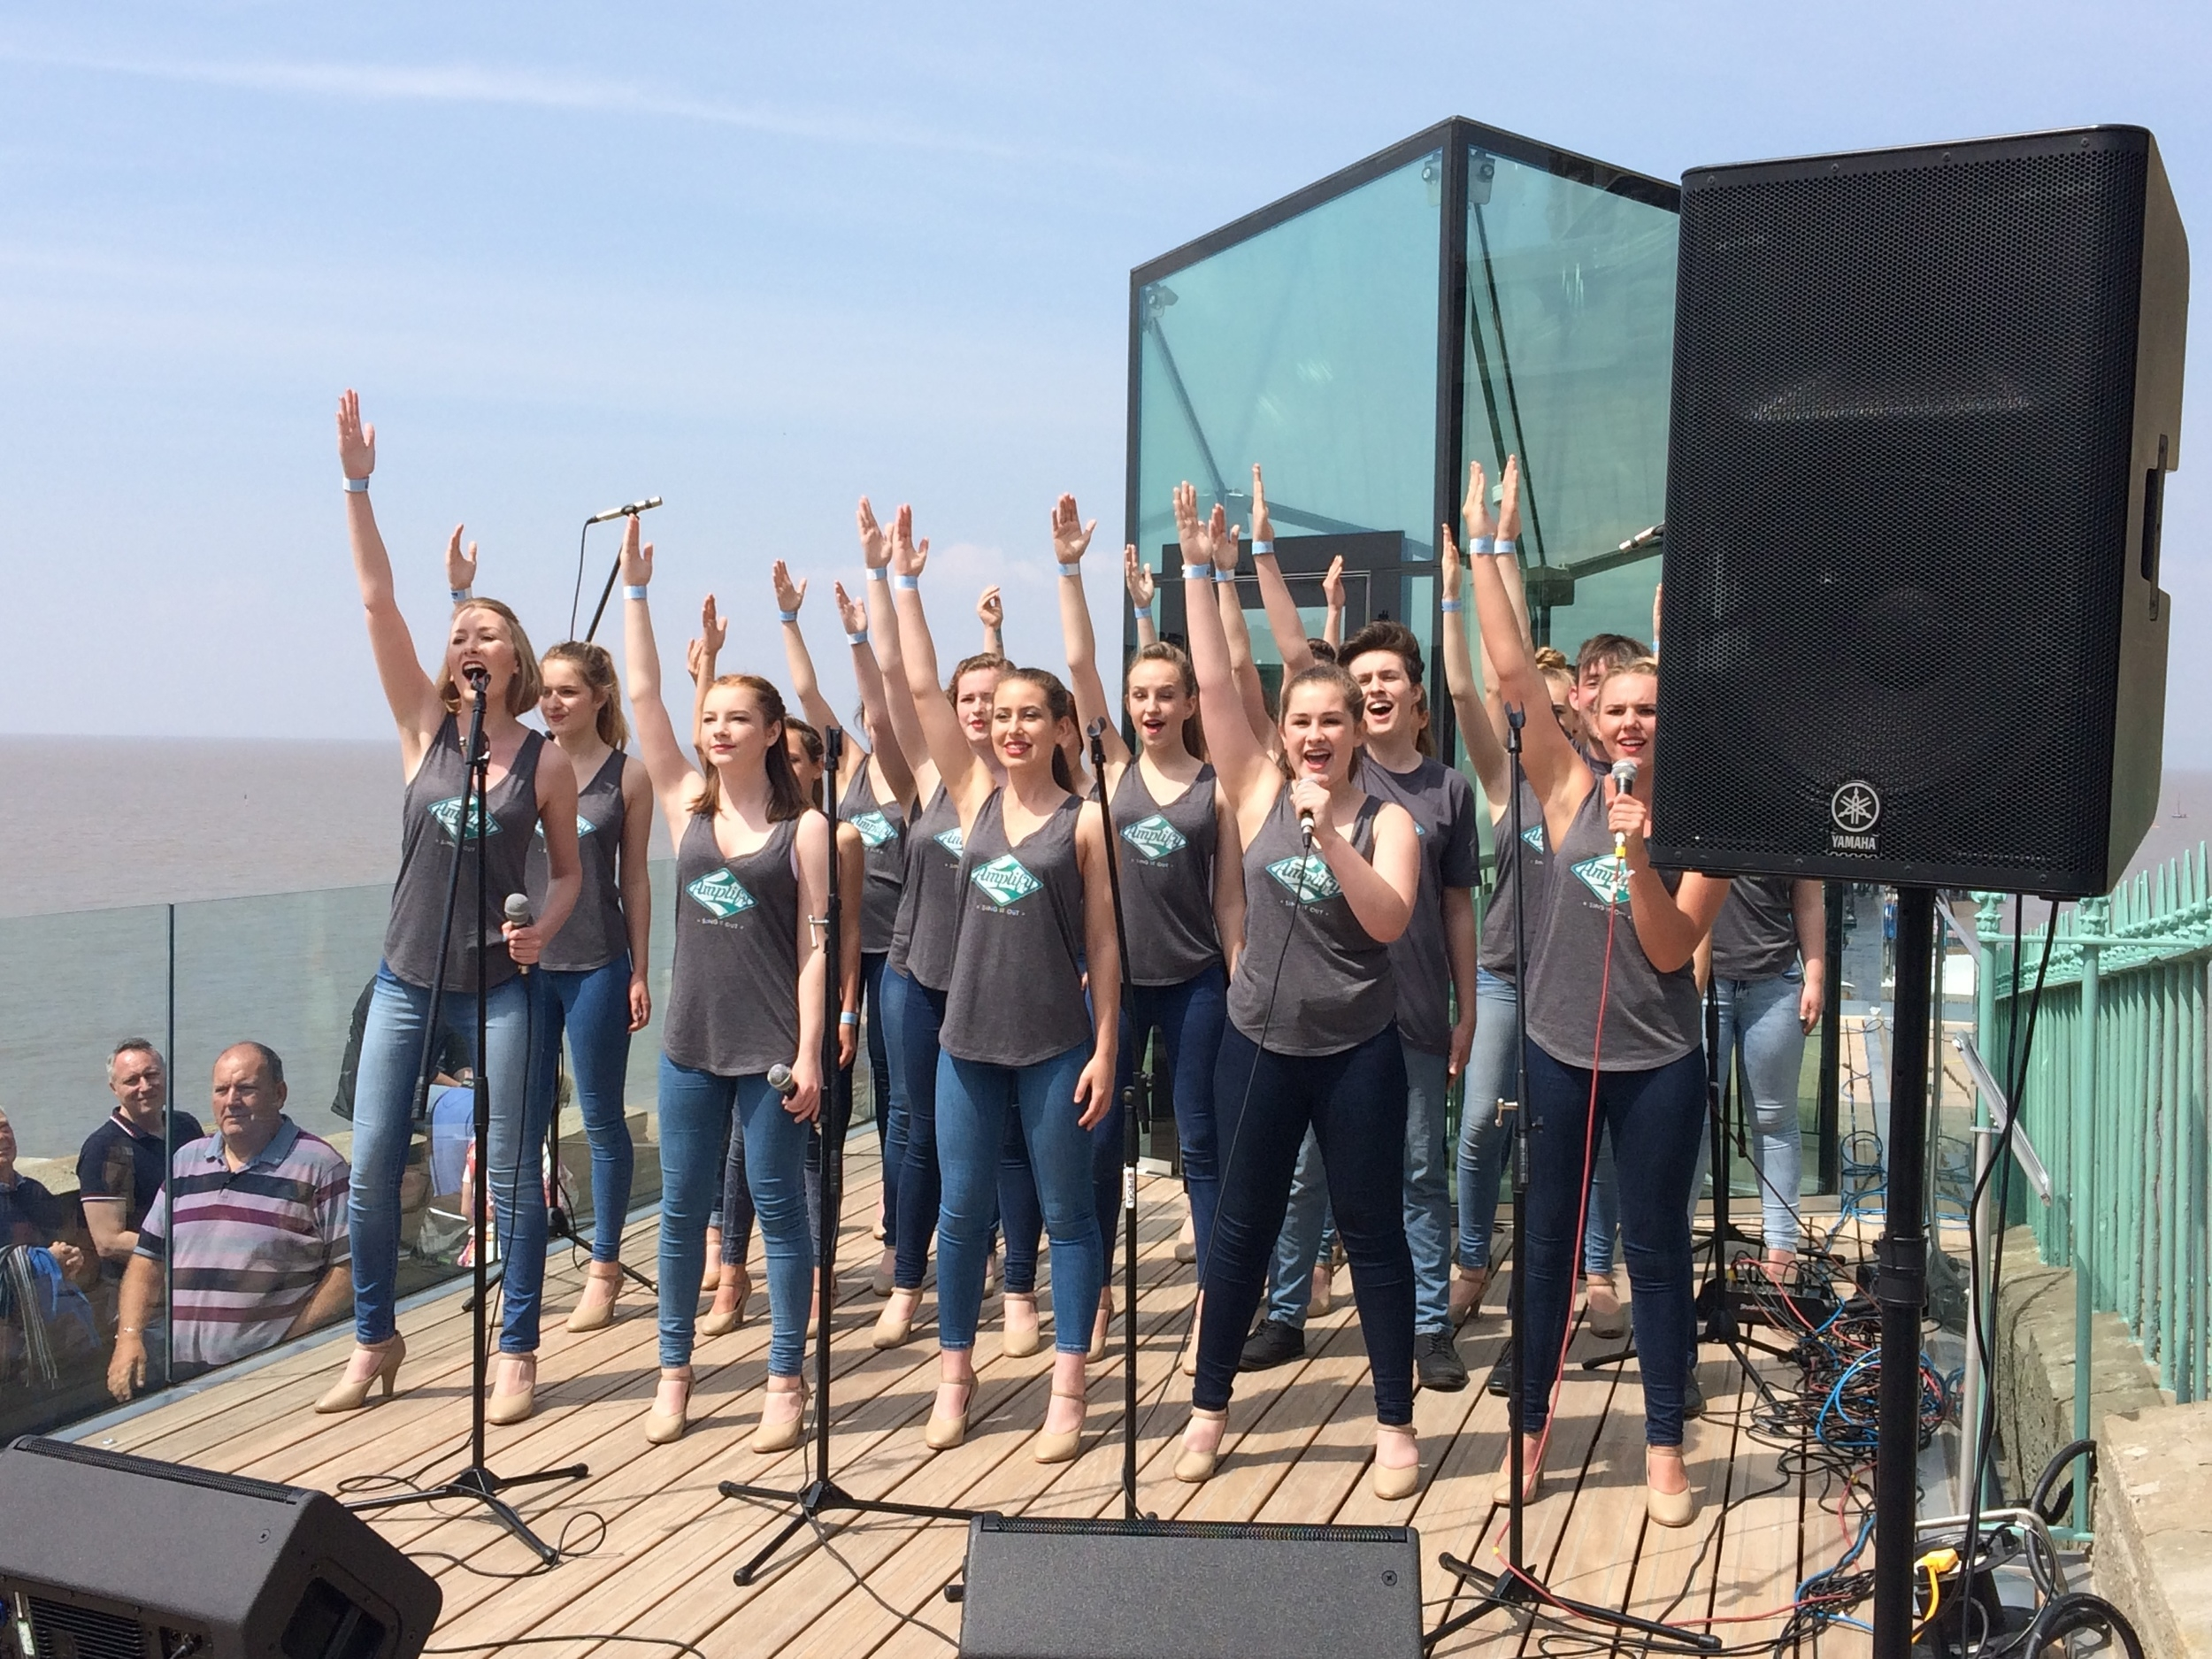 Amplify performing on Clevedon Pier